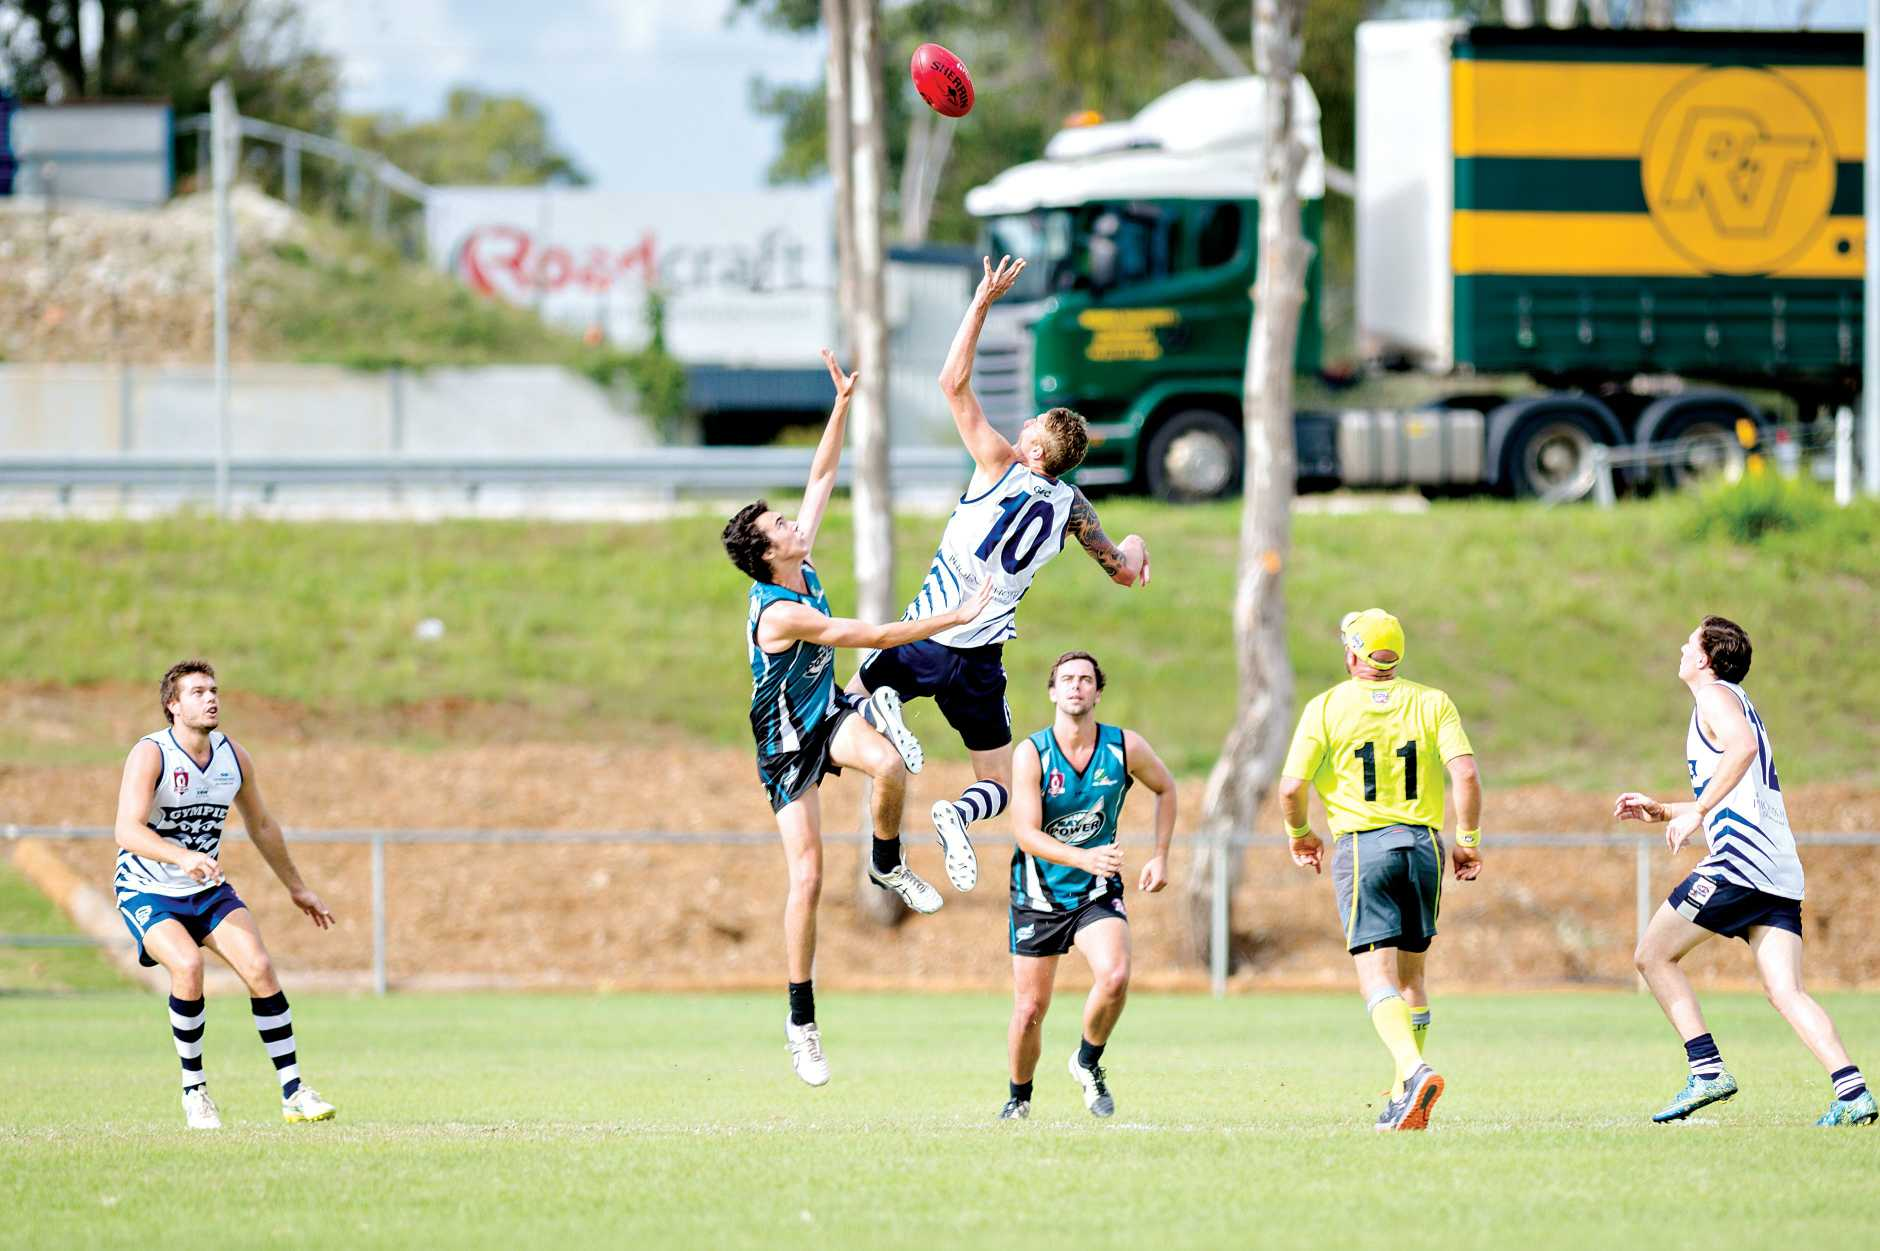 BIG LEAP: Gympie's Steele Porter shows his aeiral prowess with a big leap during the Cats 52-86 loss to the Bay Power at Six Mile Oval on Saturday.